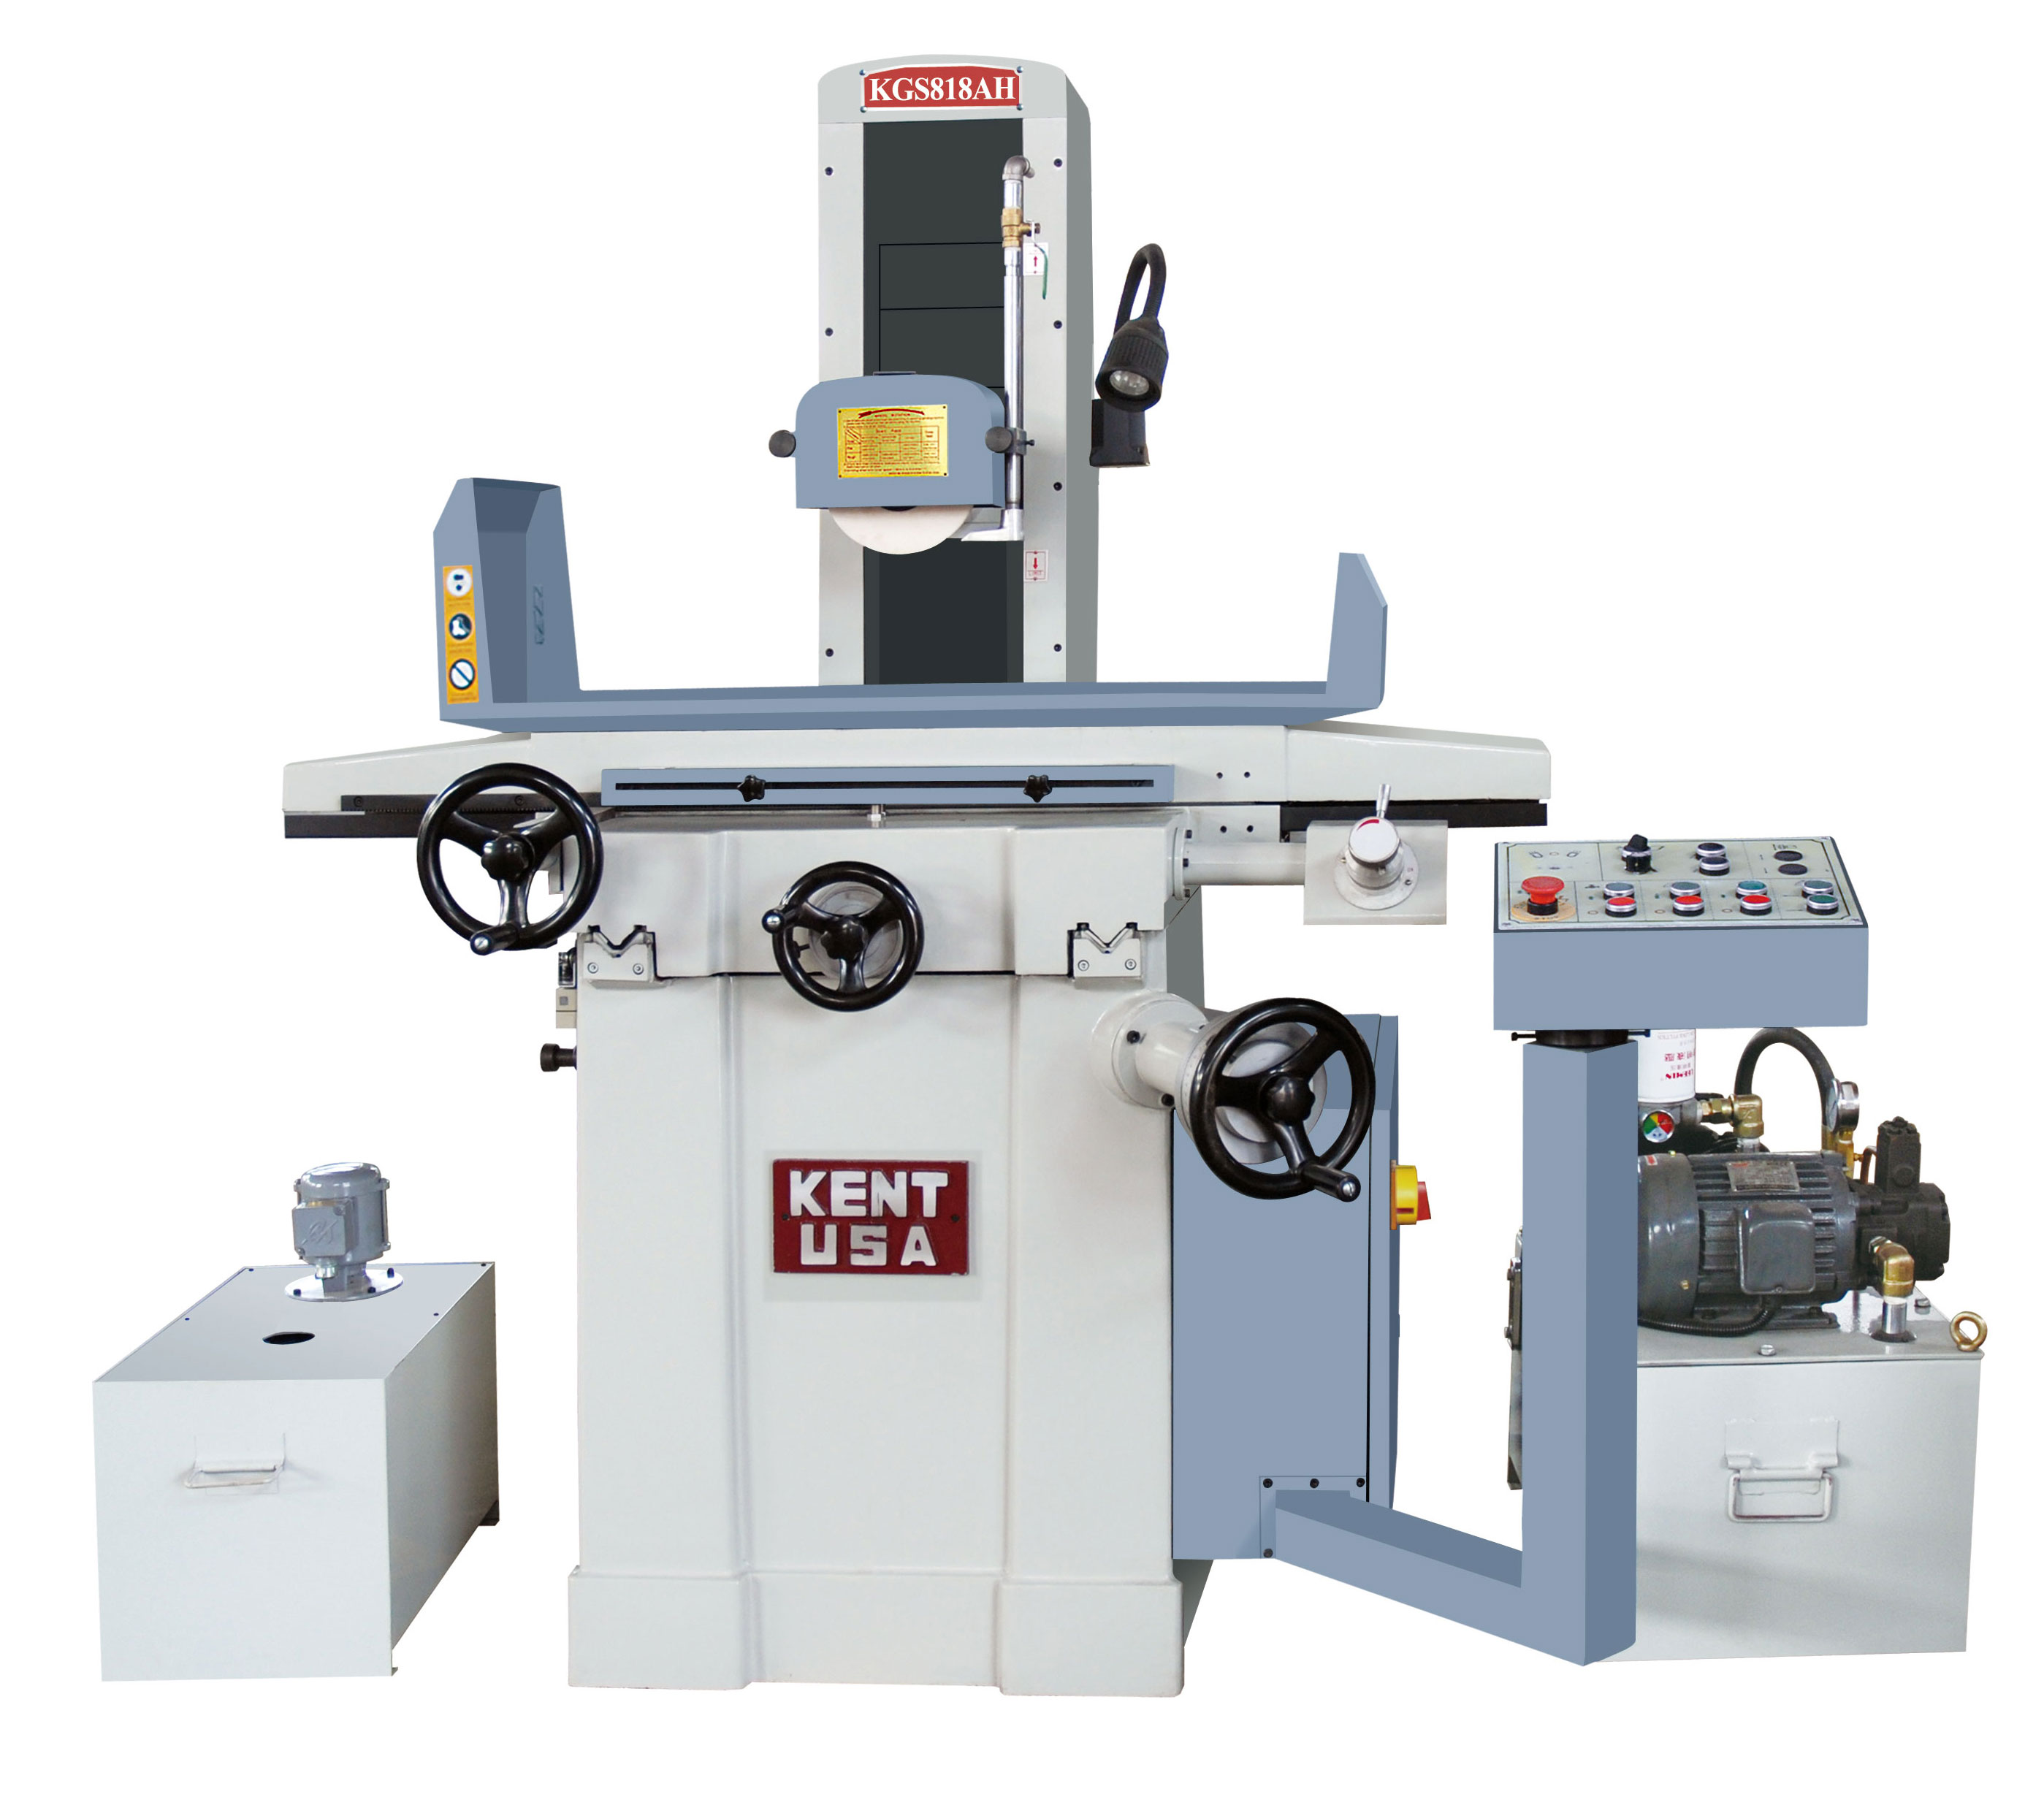 """8"""" x 18"""" KENT USA KGS-818AH AUTOMATIC SURFACE GRINDER - NEW"""